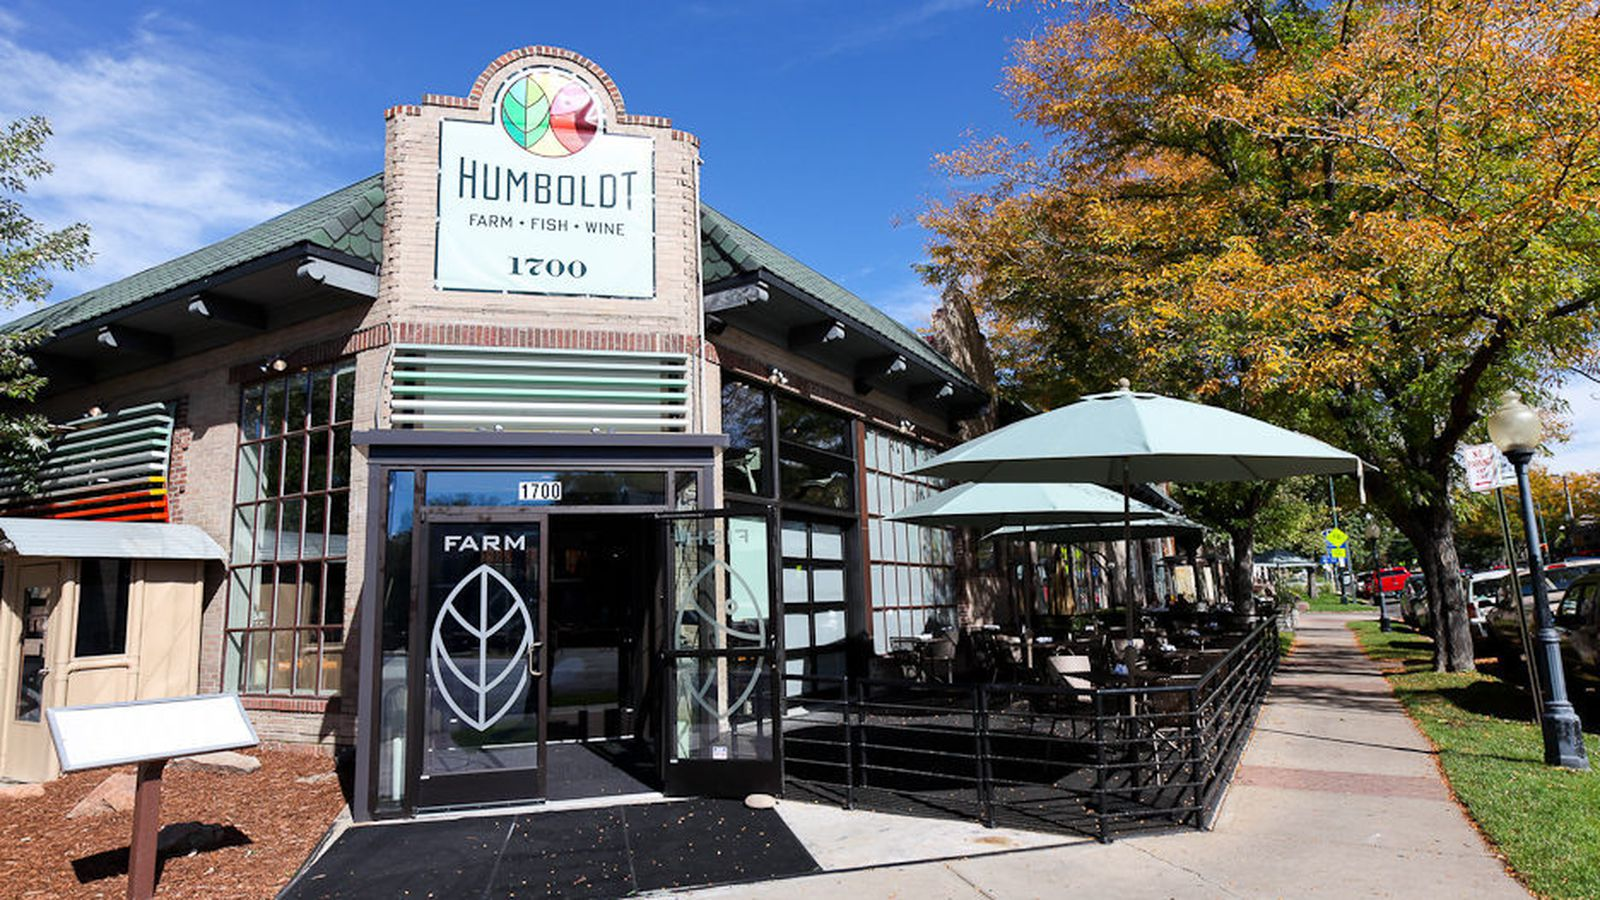 Humboldt restaurant promises to bring the farm fish and for Humboldt farm fish wine